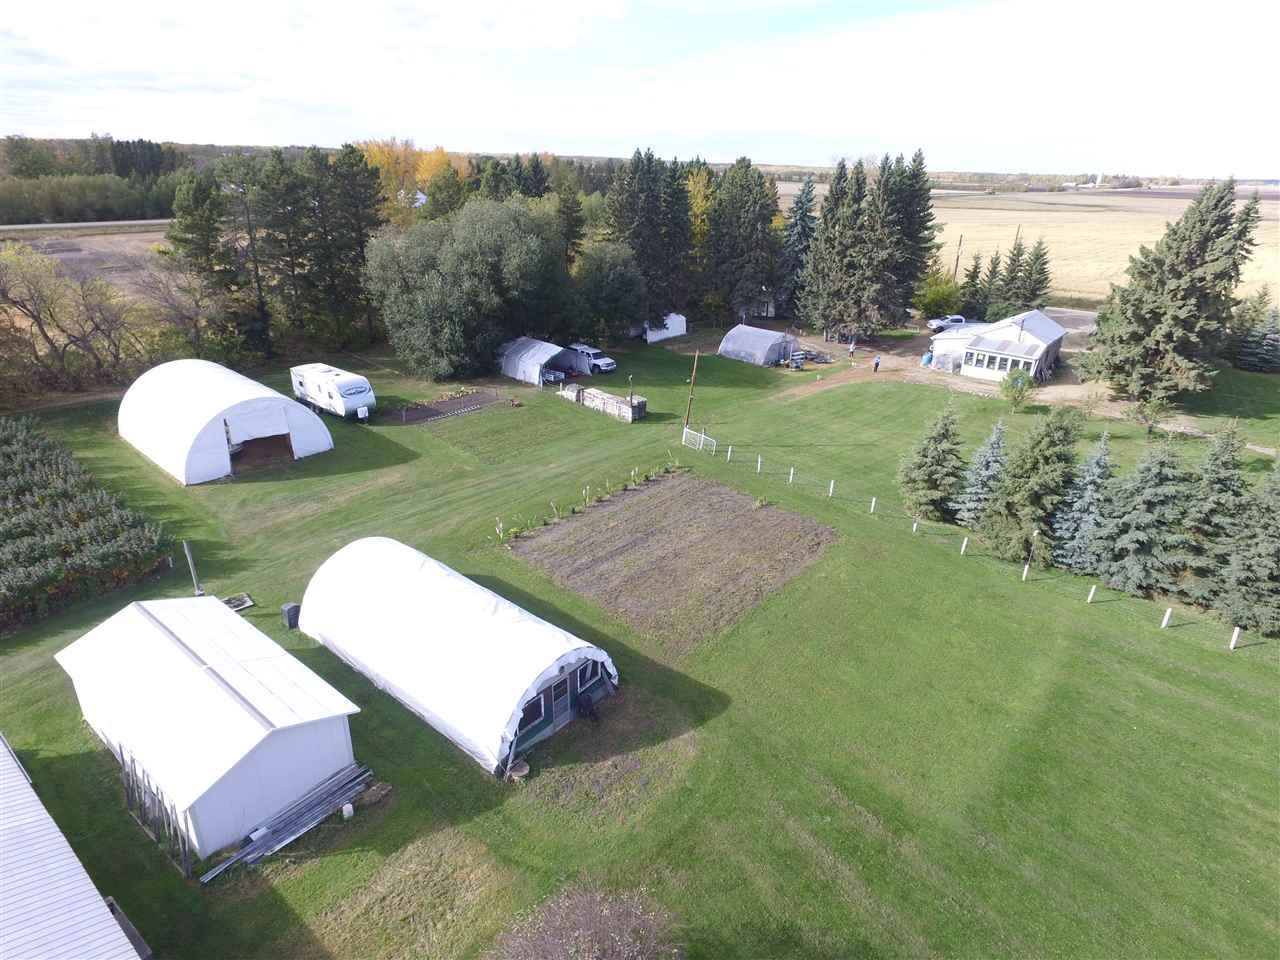 Photo 13: Photos: 265073 Twp Rd 472A: Rural Wetaskiwin County House for sale : MLS®# E4216435